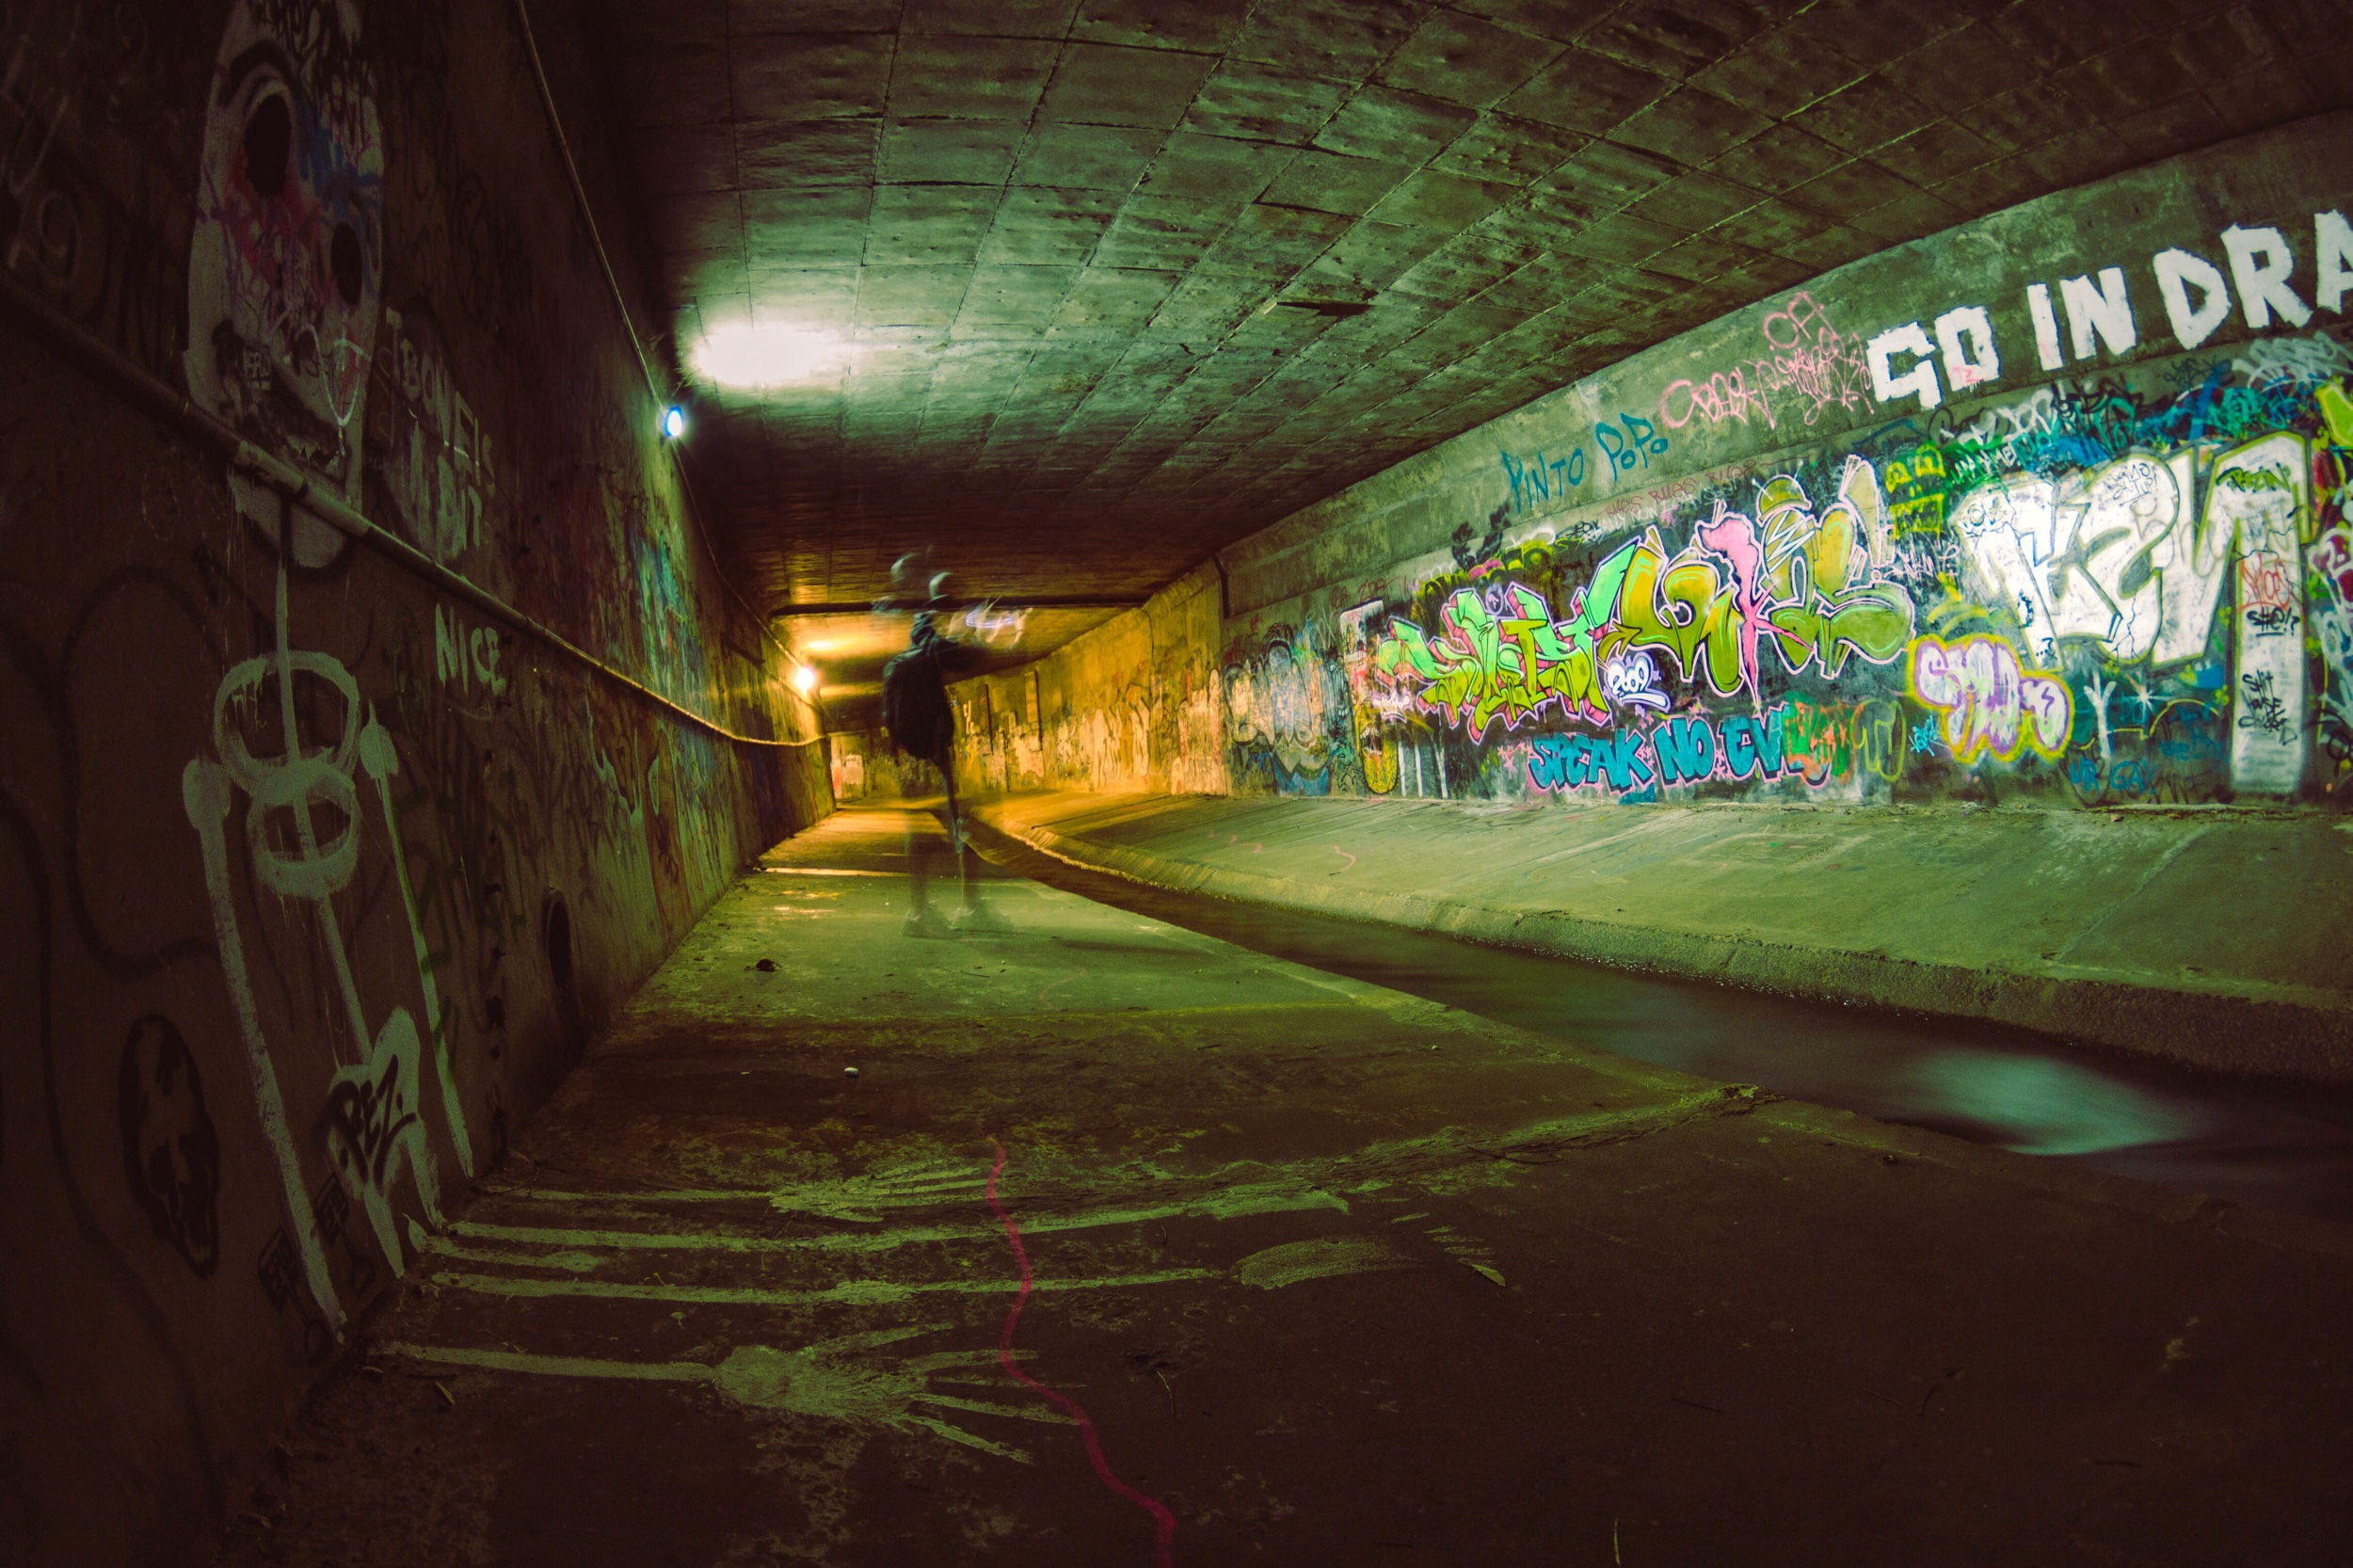 Rivulet section underneath Hobart CBD | (2011)